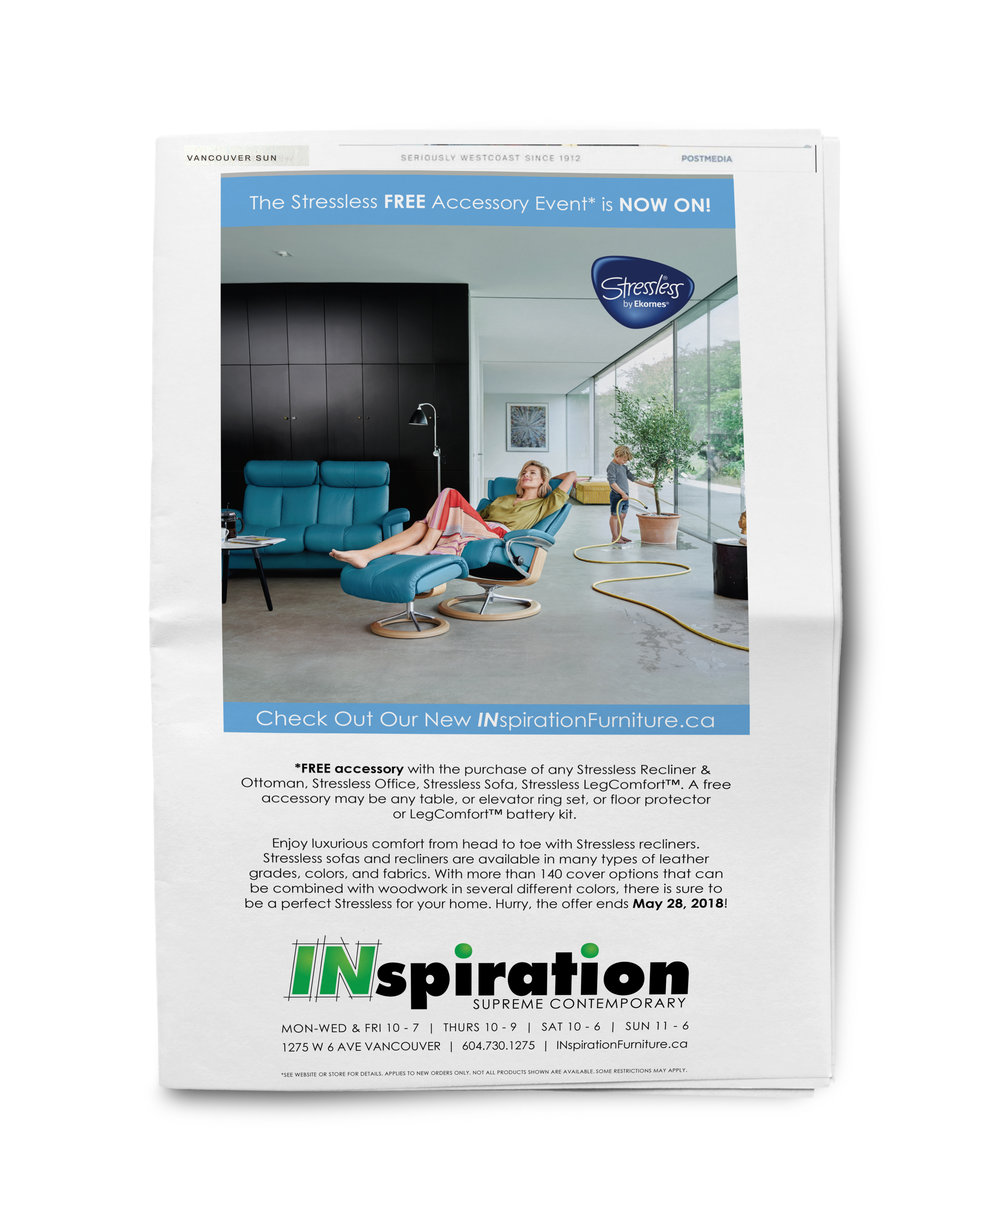 INspiration_Vancouver_Newspaper11.jpg